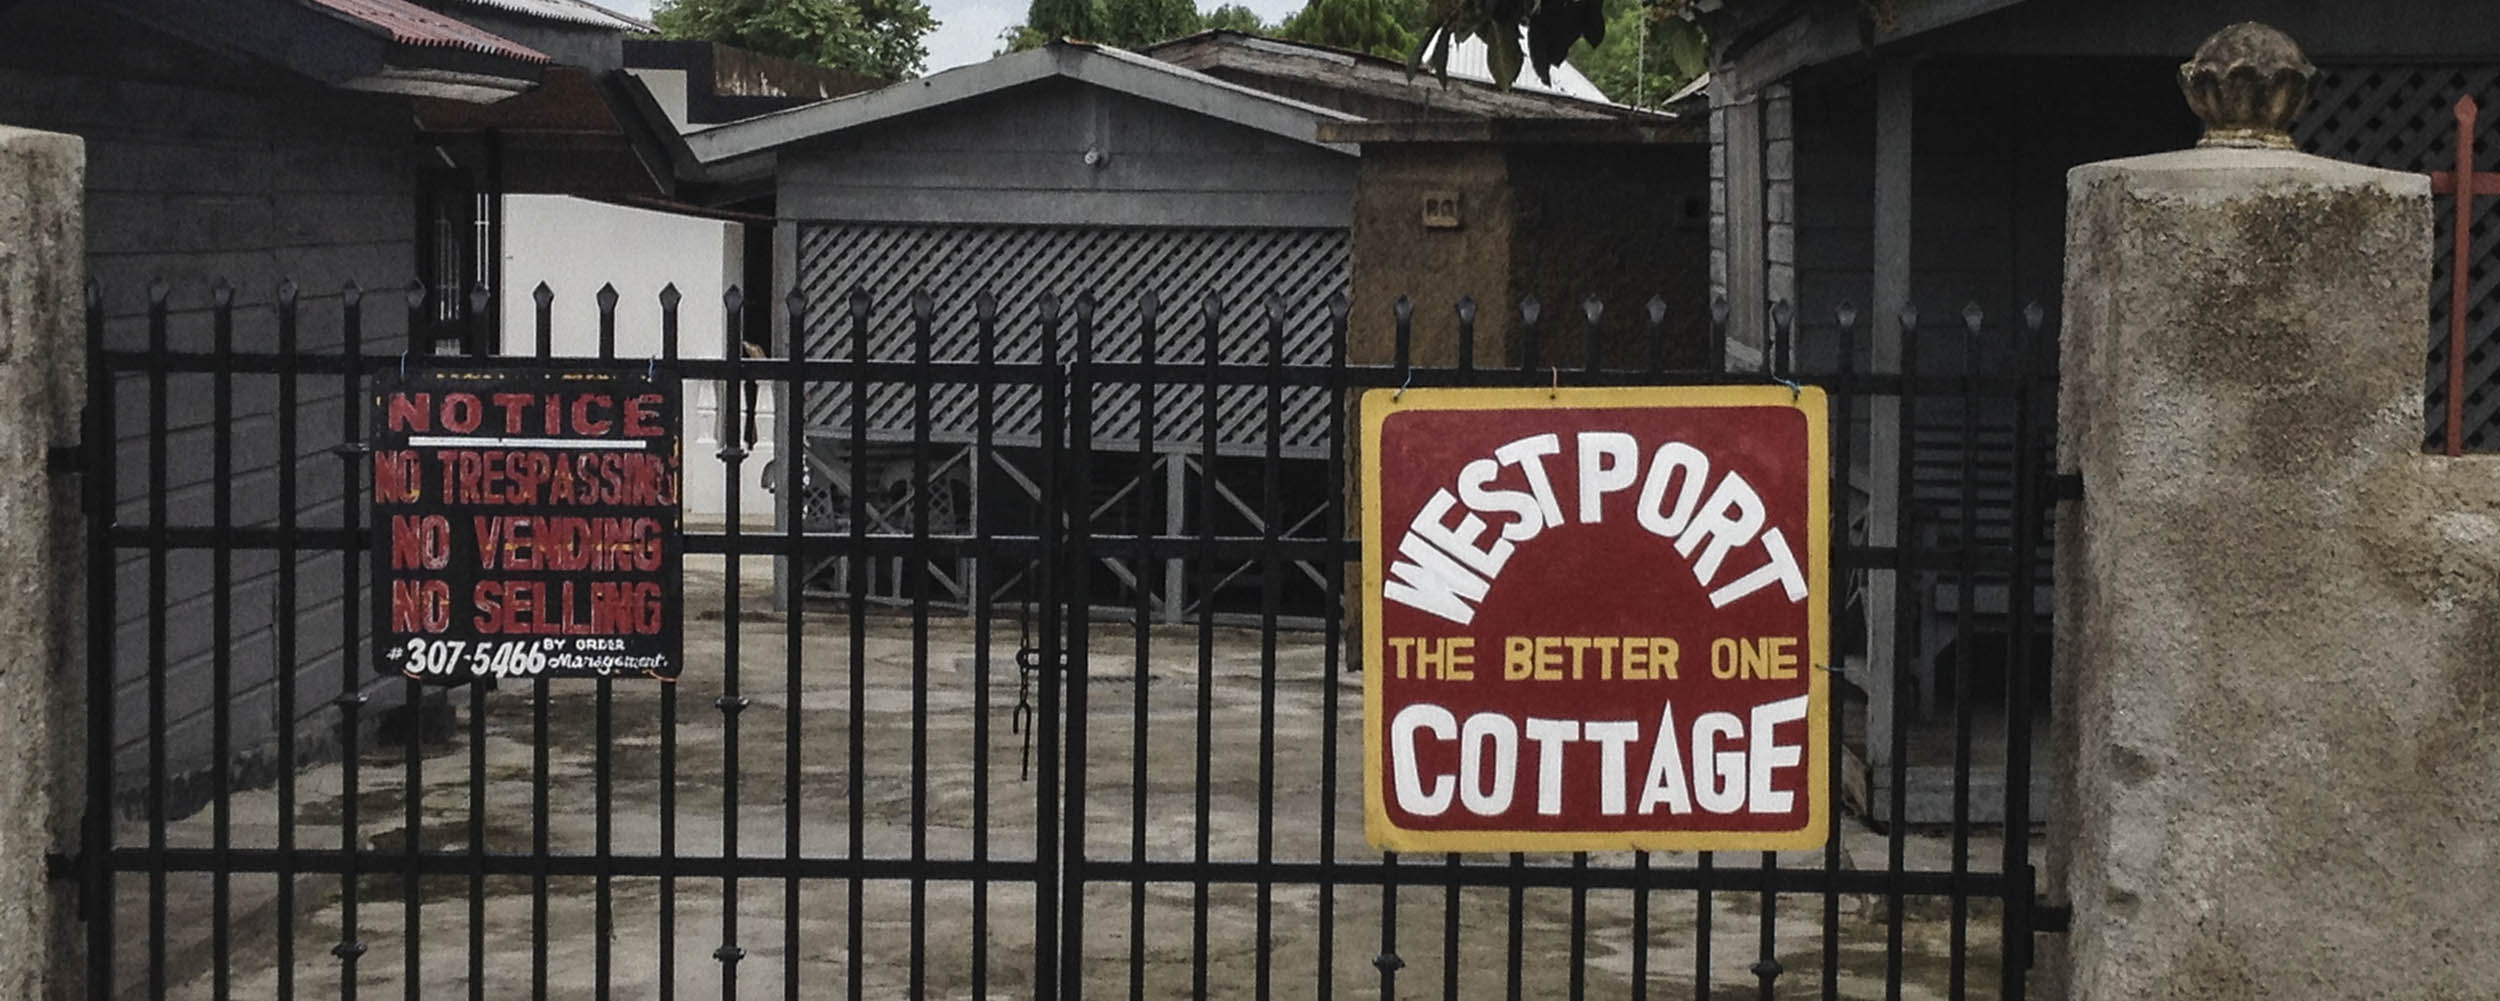 Westport Cottage - Negril Jamaica